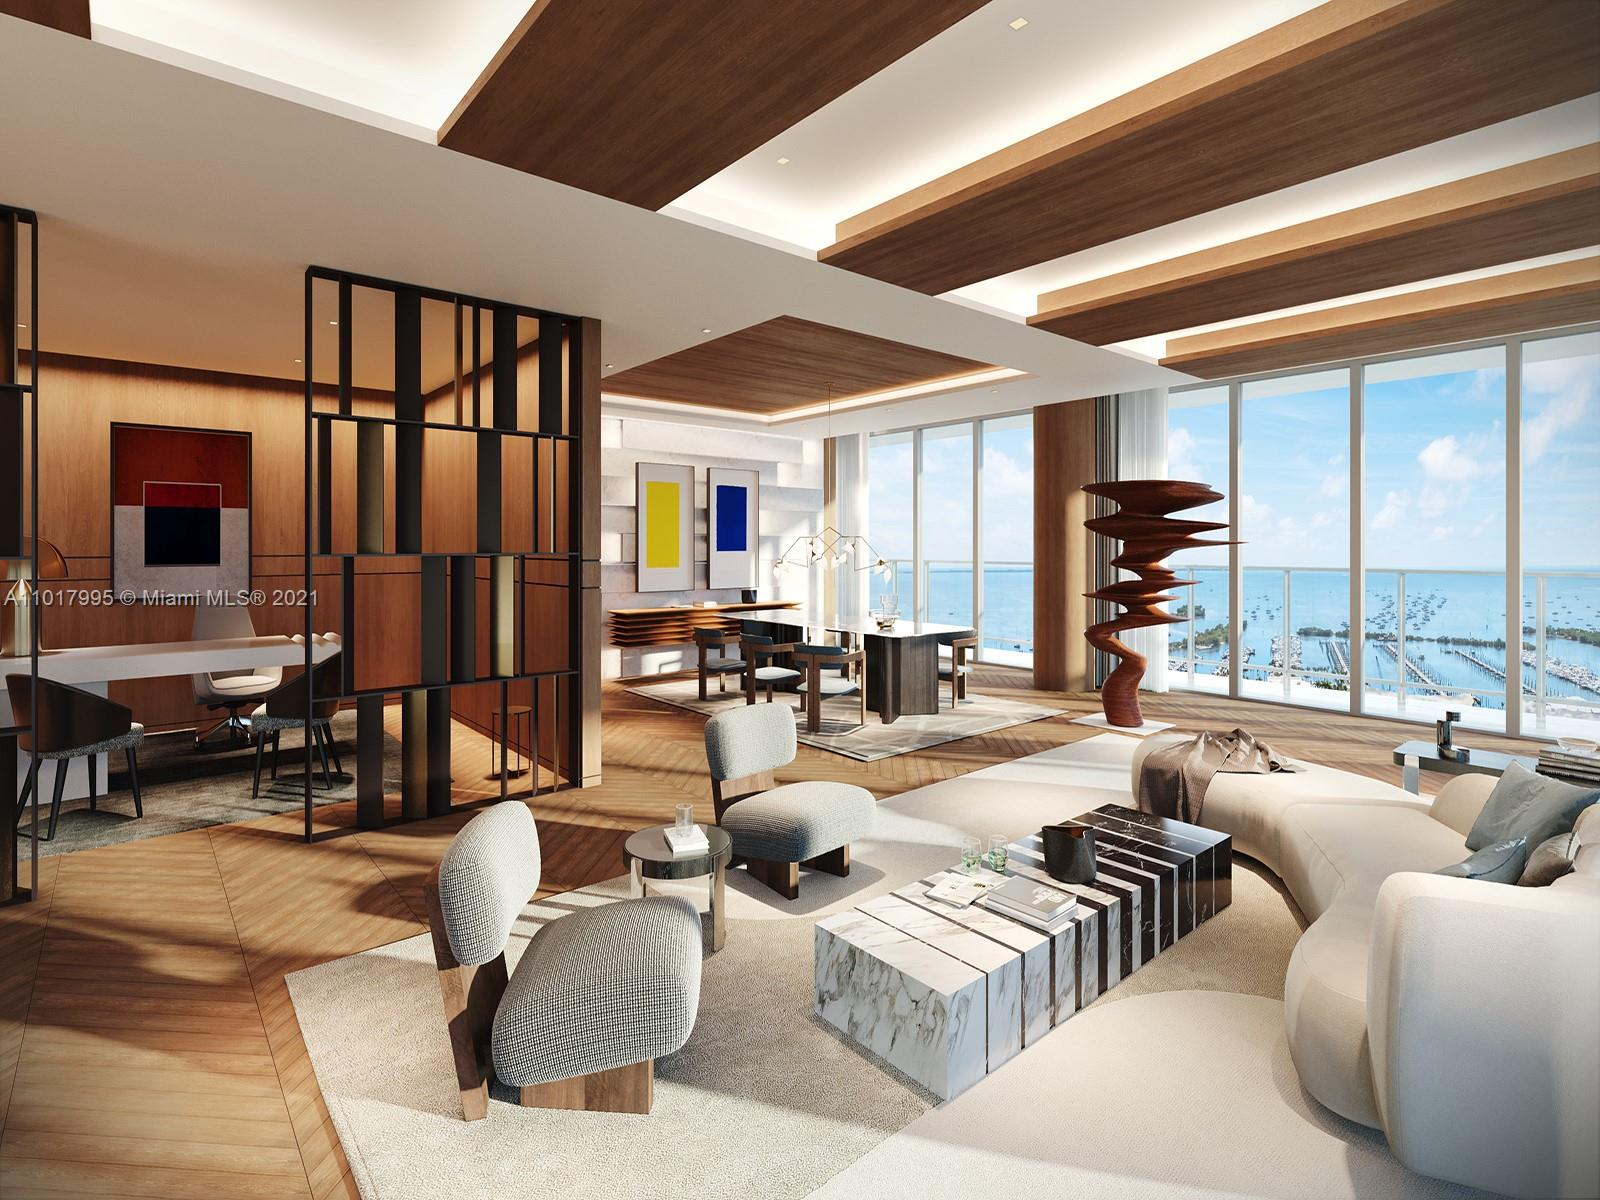 This full-floor penthouse at Grove at Grand Bay has been conceptualized by Tamara Feldman Design to instill depth and character to this architectural marvel by Bjarke Ingels which twists exotically on the Coconut Grove skyline. Spanning 10,118 square feet of interior space, the proposed design combines various natural elements such as herringbone floors and wood veneer ceilings with cove lighting in the living room and illuminated limestone in the dining room, with oversized bronze doors leading to the office. Under the 12-foot ceilings, the hurricane impact glass walls offer spectacular views of the Coconut Grove waterfront, enveloped by long, deep balconies. Meanwhile, one floor up, an exquisite private roof deck with an oversized pool is your arcadian oasis.